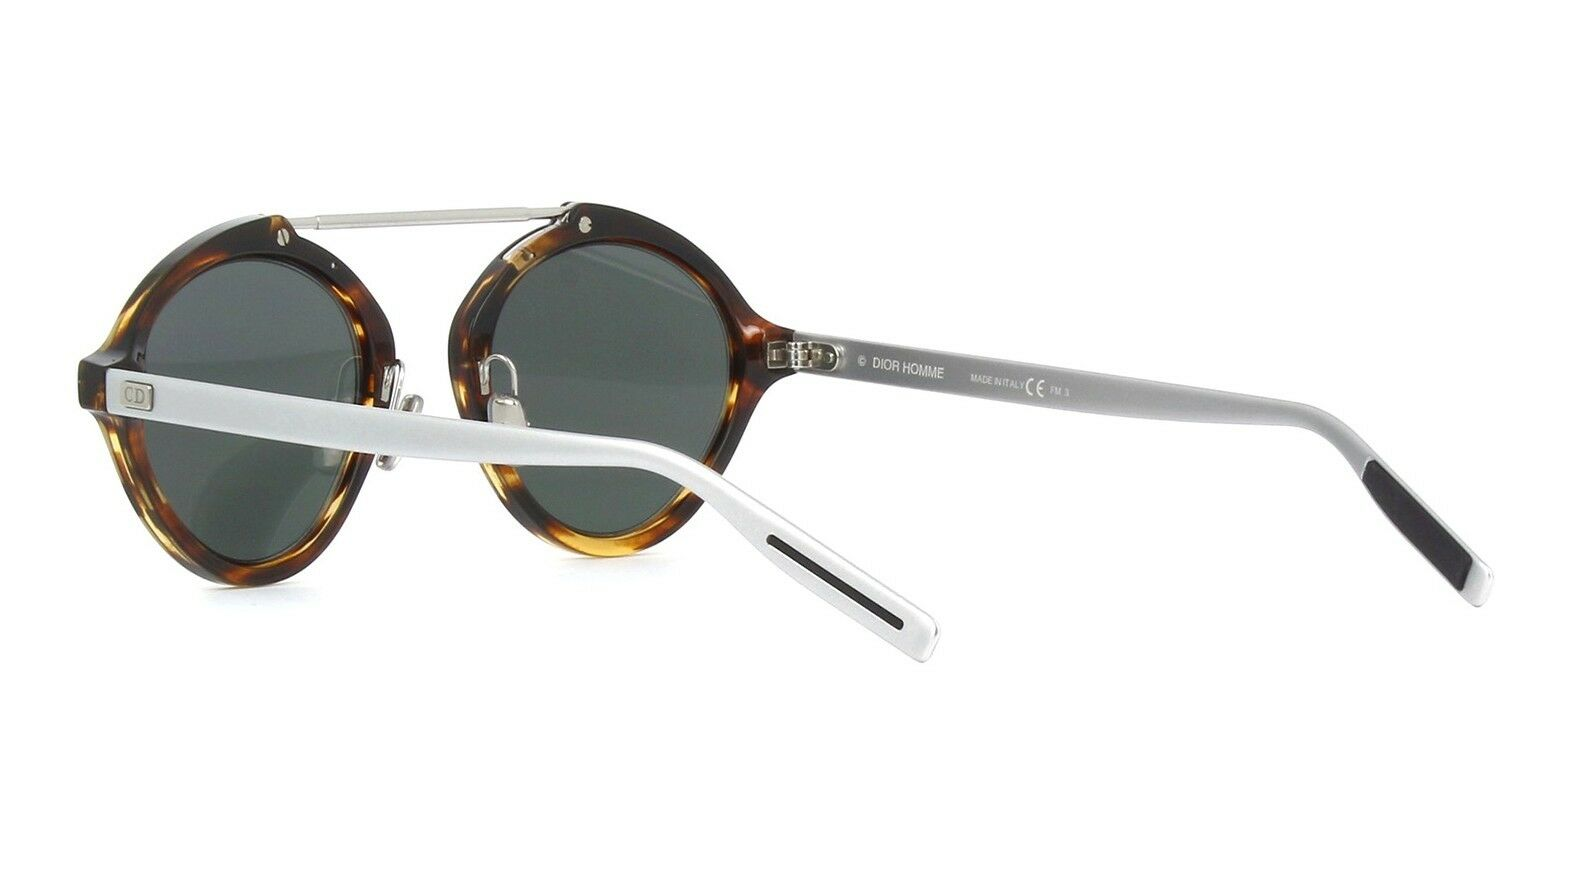 1d93d6e7084ac Christian Dior System 086dc Dark Havana   White Multilayer Sunglasses for  sale online